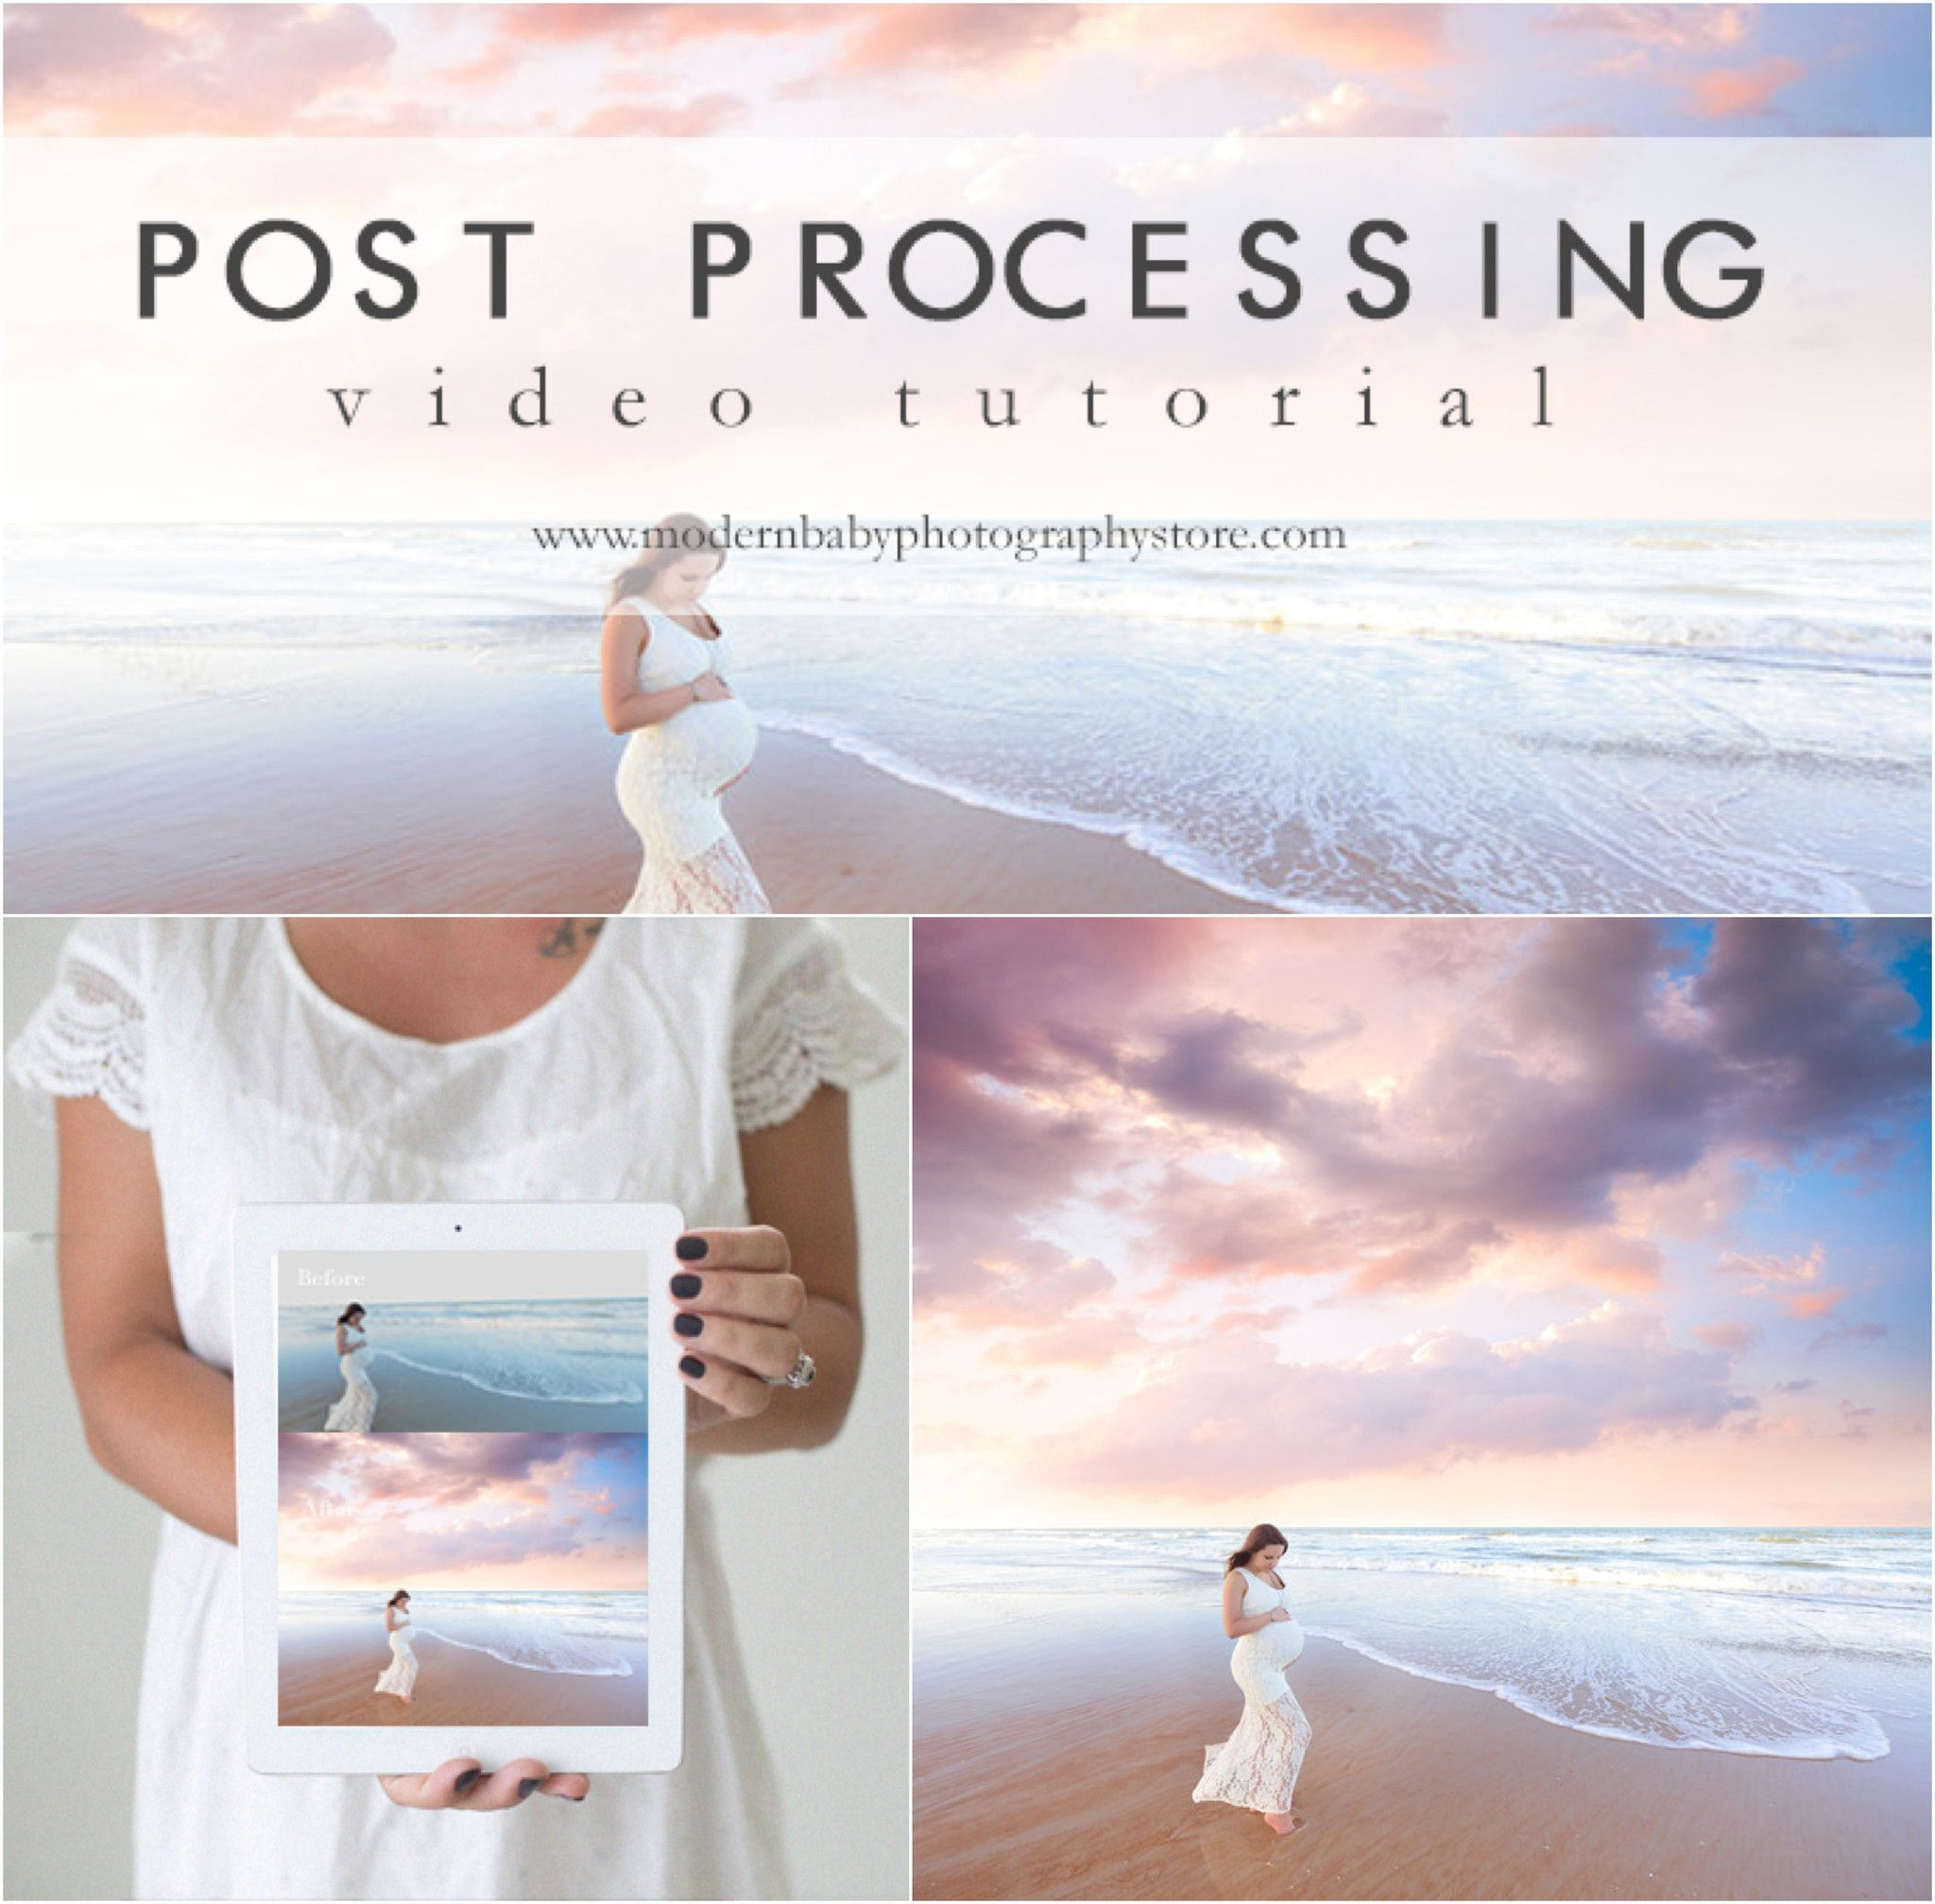 Awesome Post Processing Video Showing How To Edit Super Dreamy Beach  Images! Covers Everything From